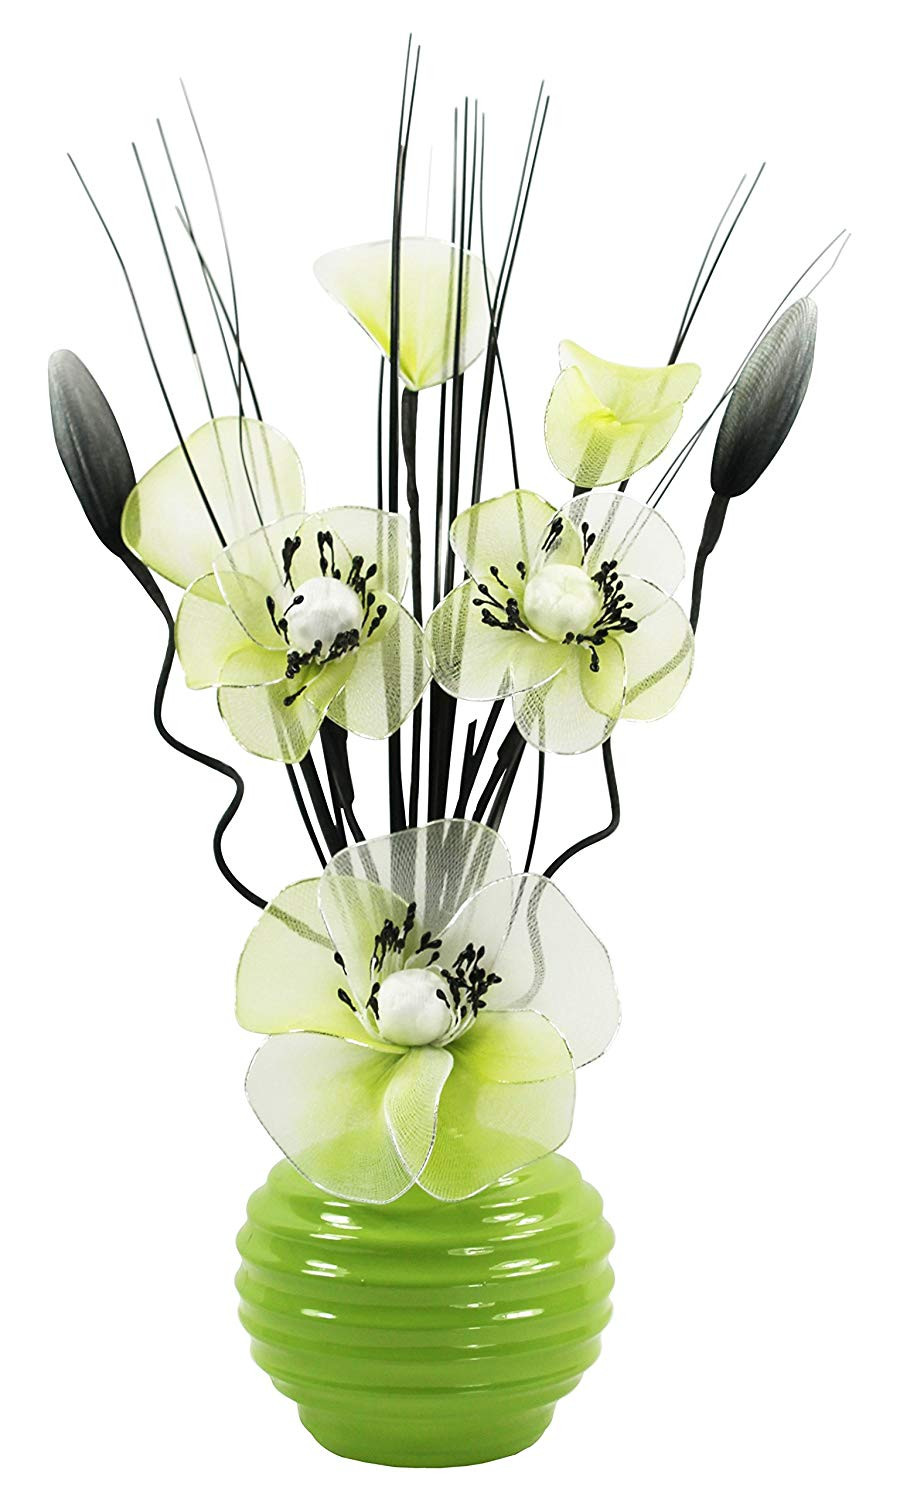 22 Elegant Artificial Roses In Glass Vase 2021 free download artificial roses in glass vase of green vase with green and white artificial flowers ornaments for with regard to green vase with green and white artificial flowers ornaments for living room